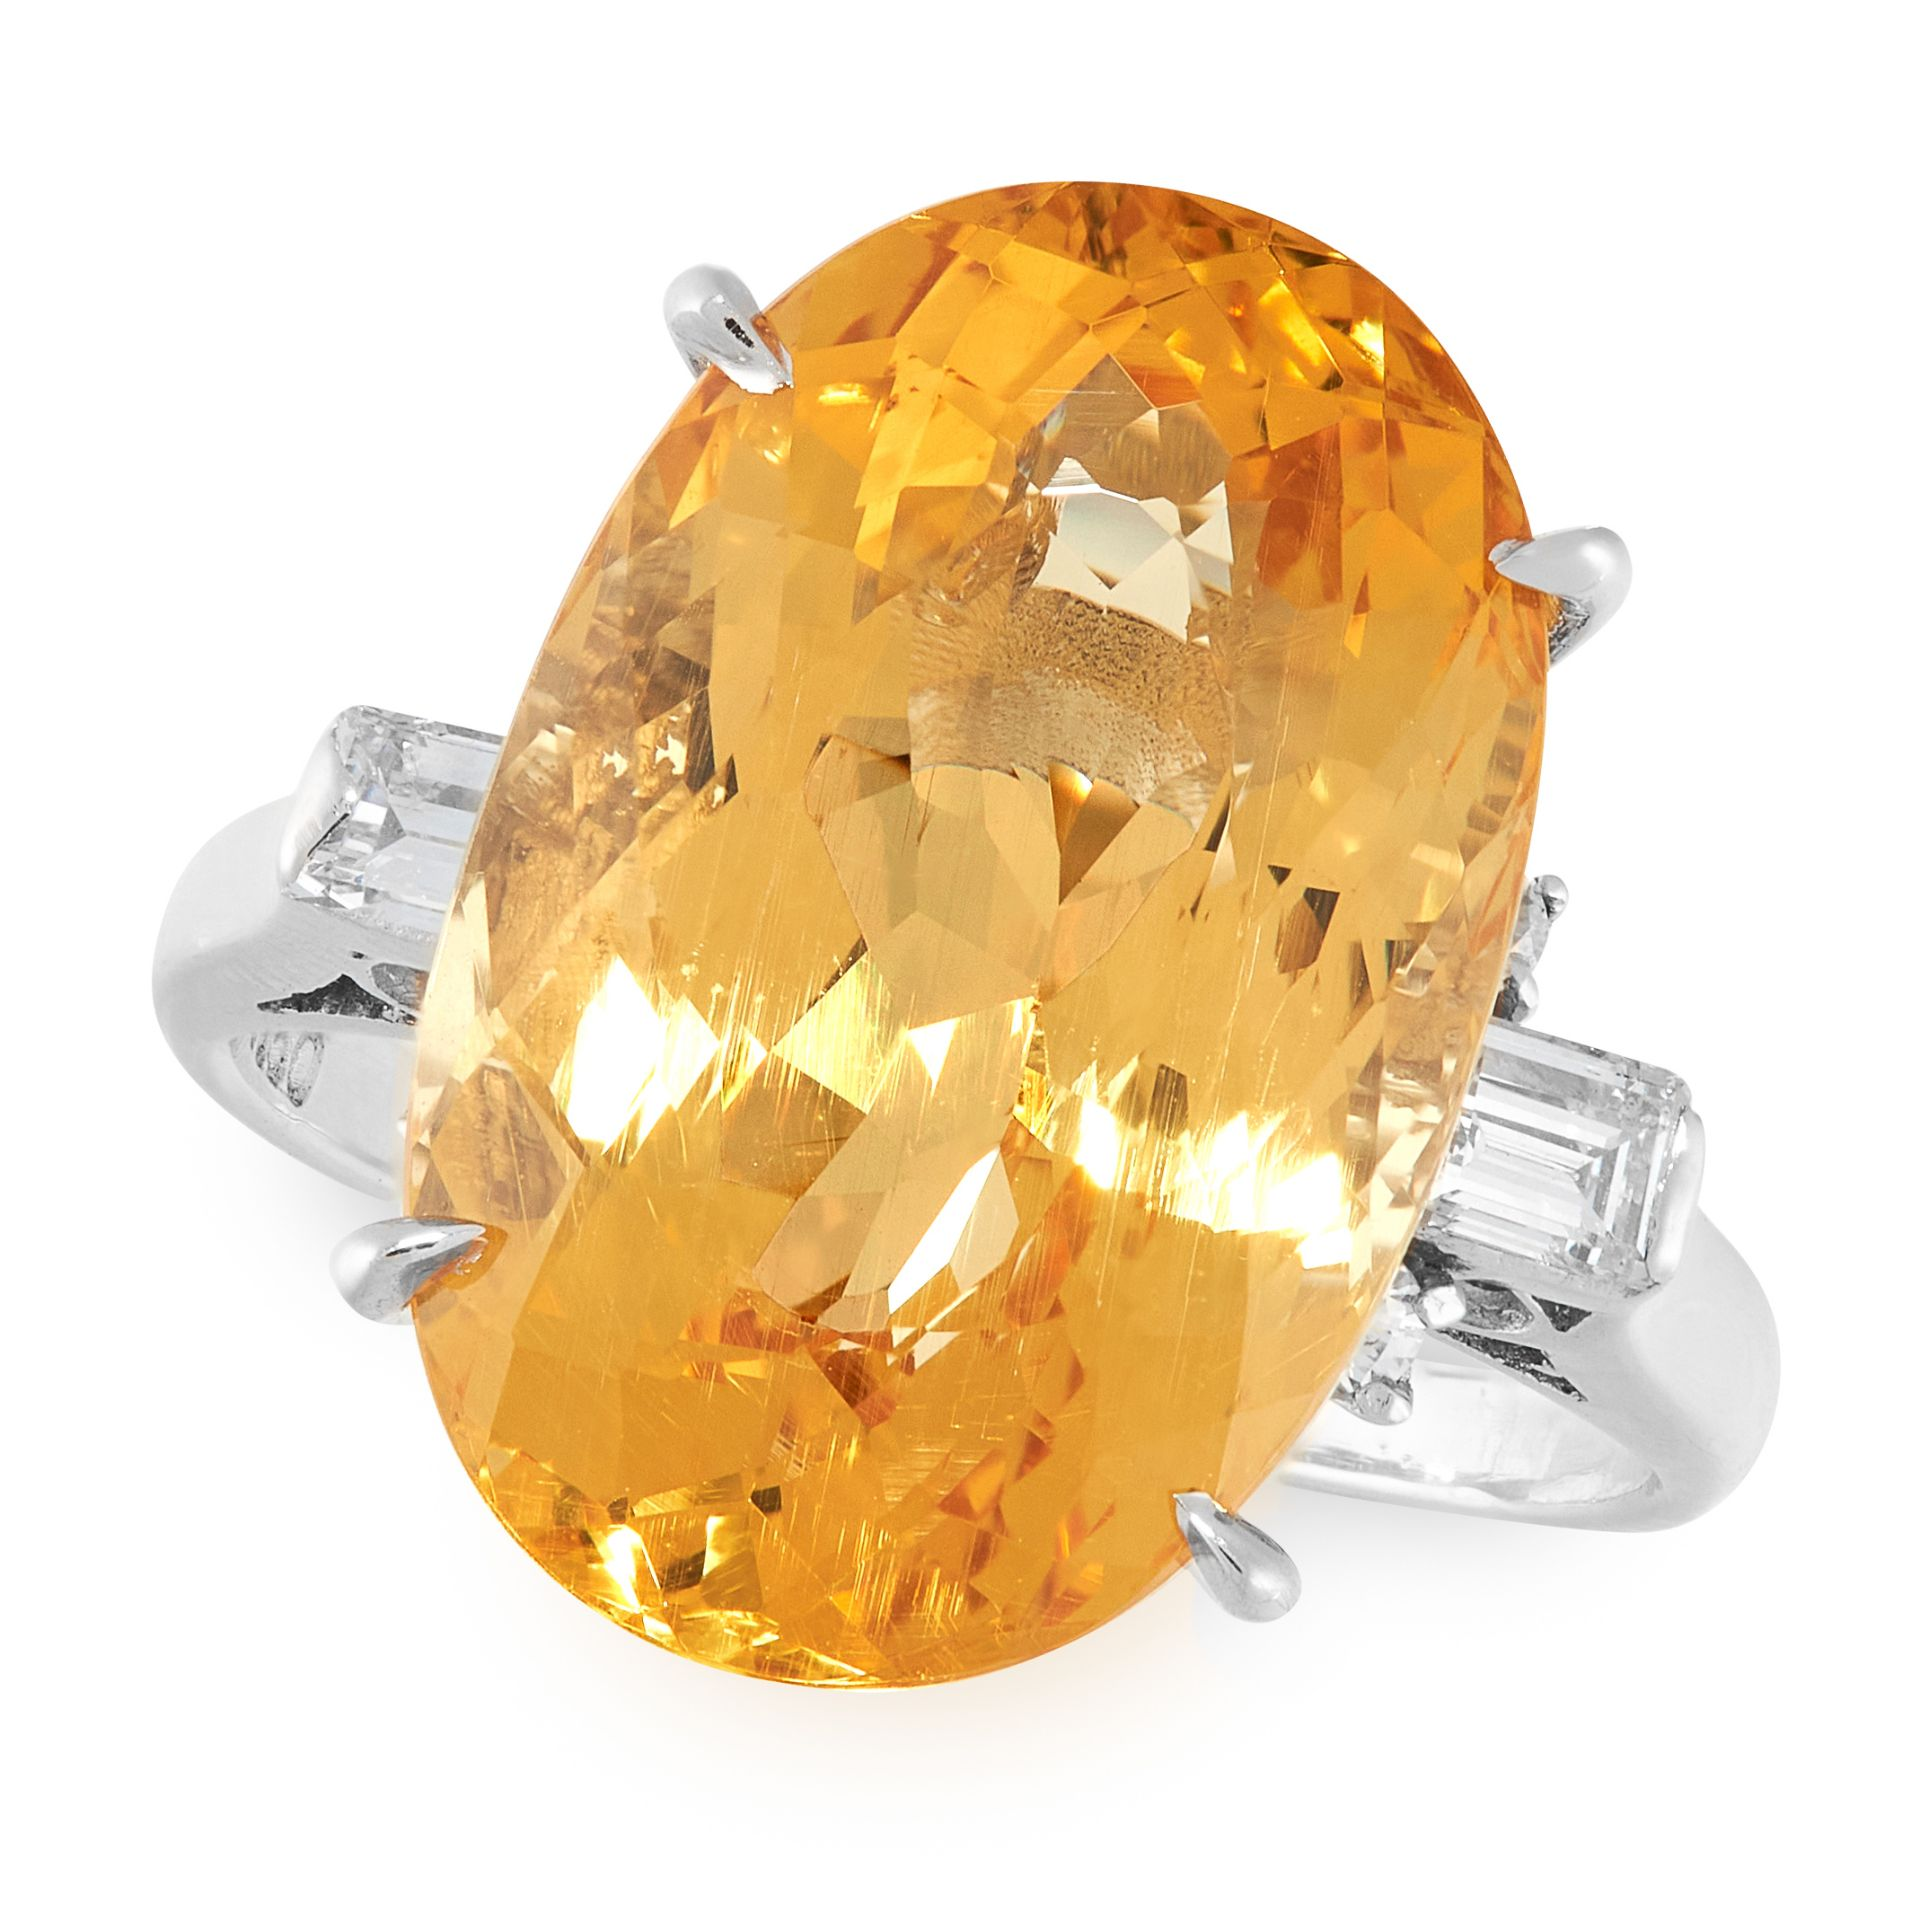 A HELIODOR AND DIAMOND RING in platinum, set with an oval cut heliodor (golden beryl) of 10.08